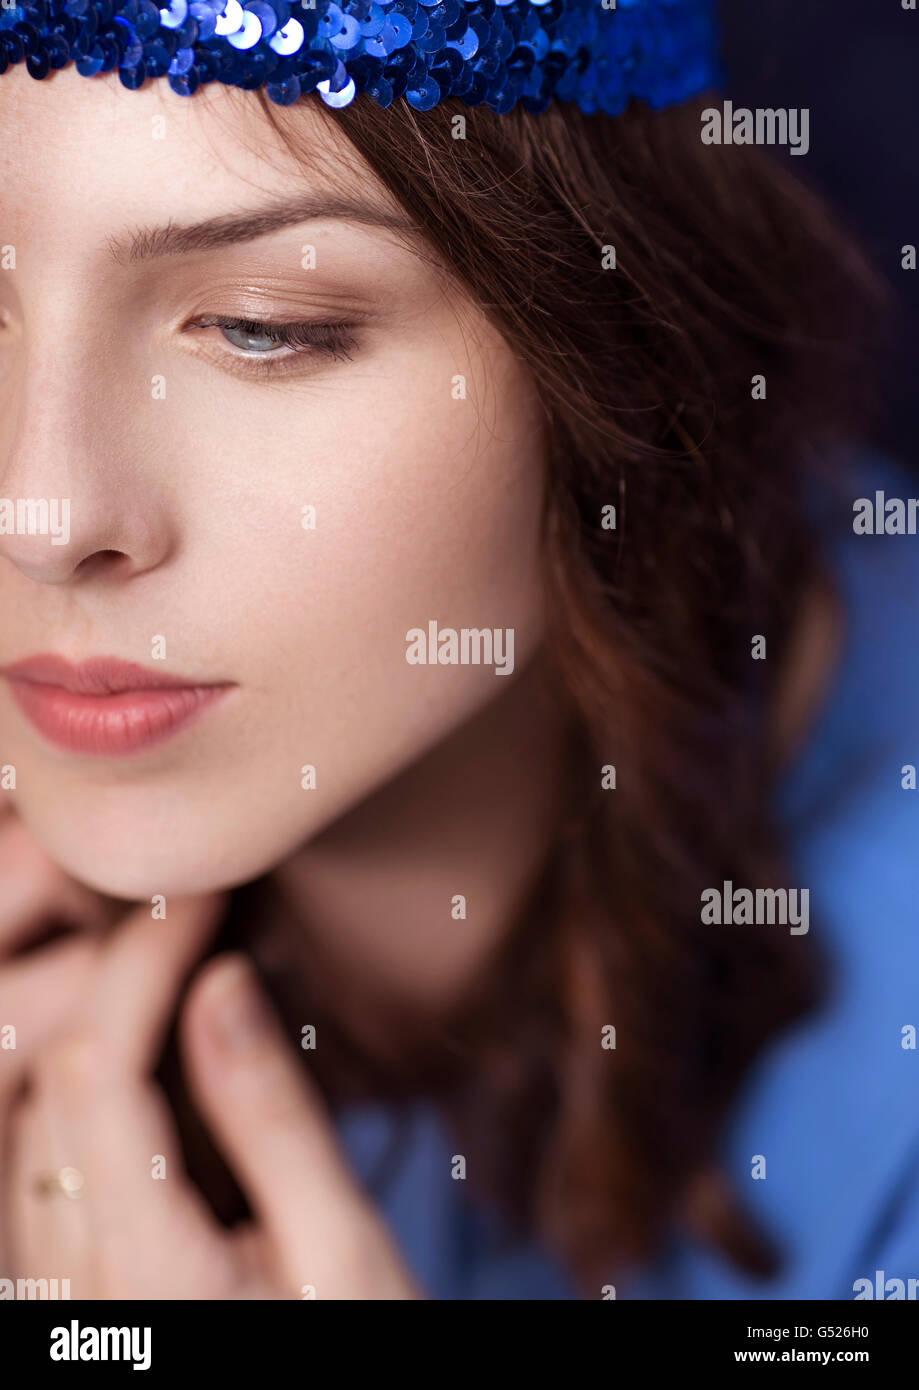 Closeup portrait of a girl with glittery blue ribbon Stock Photo